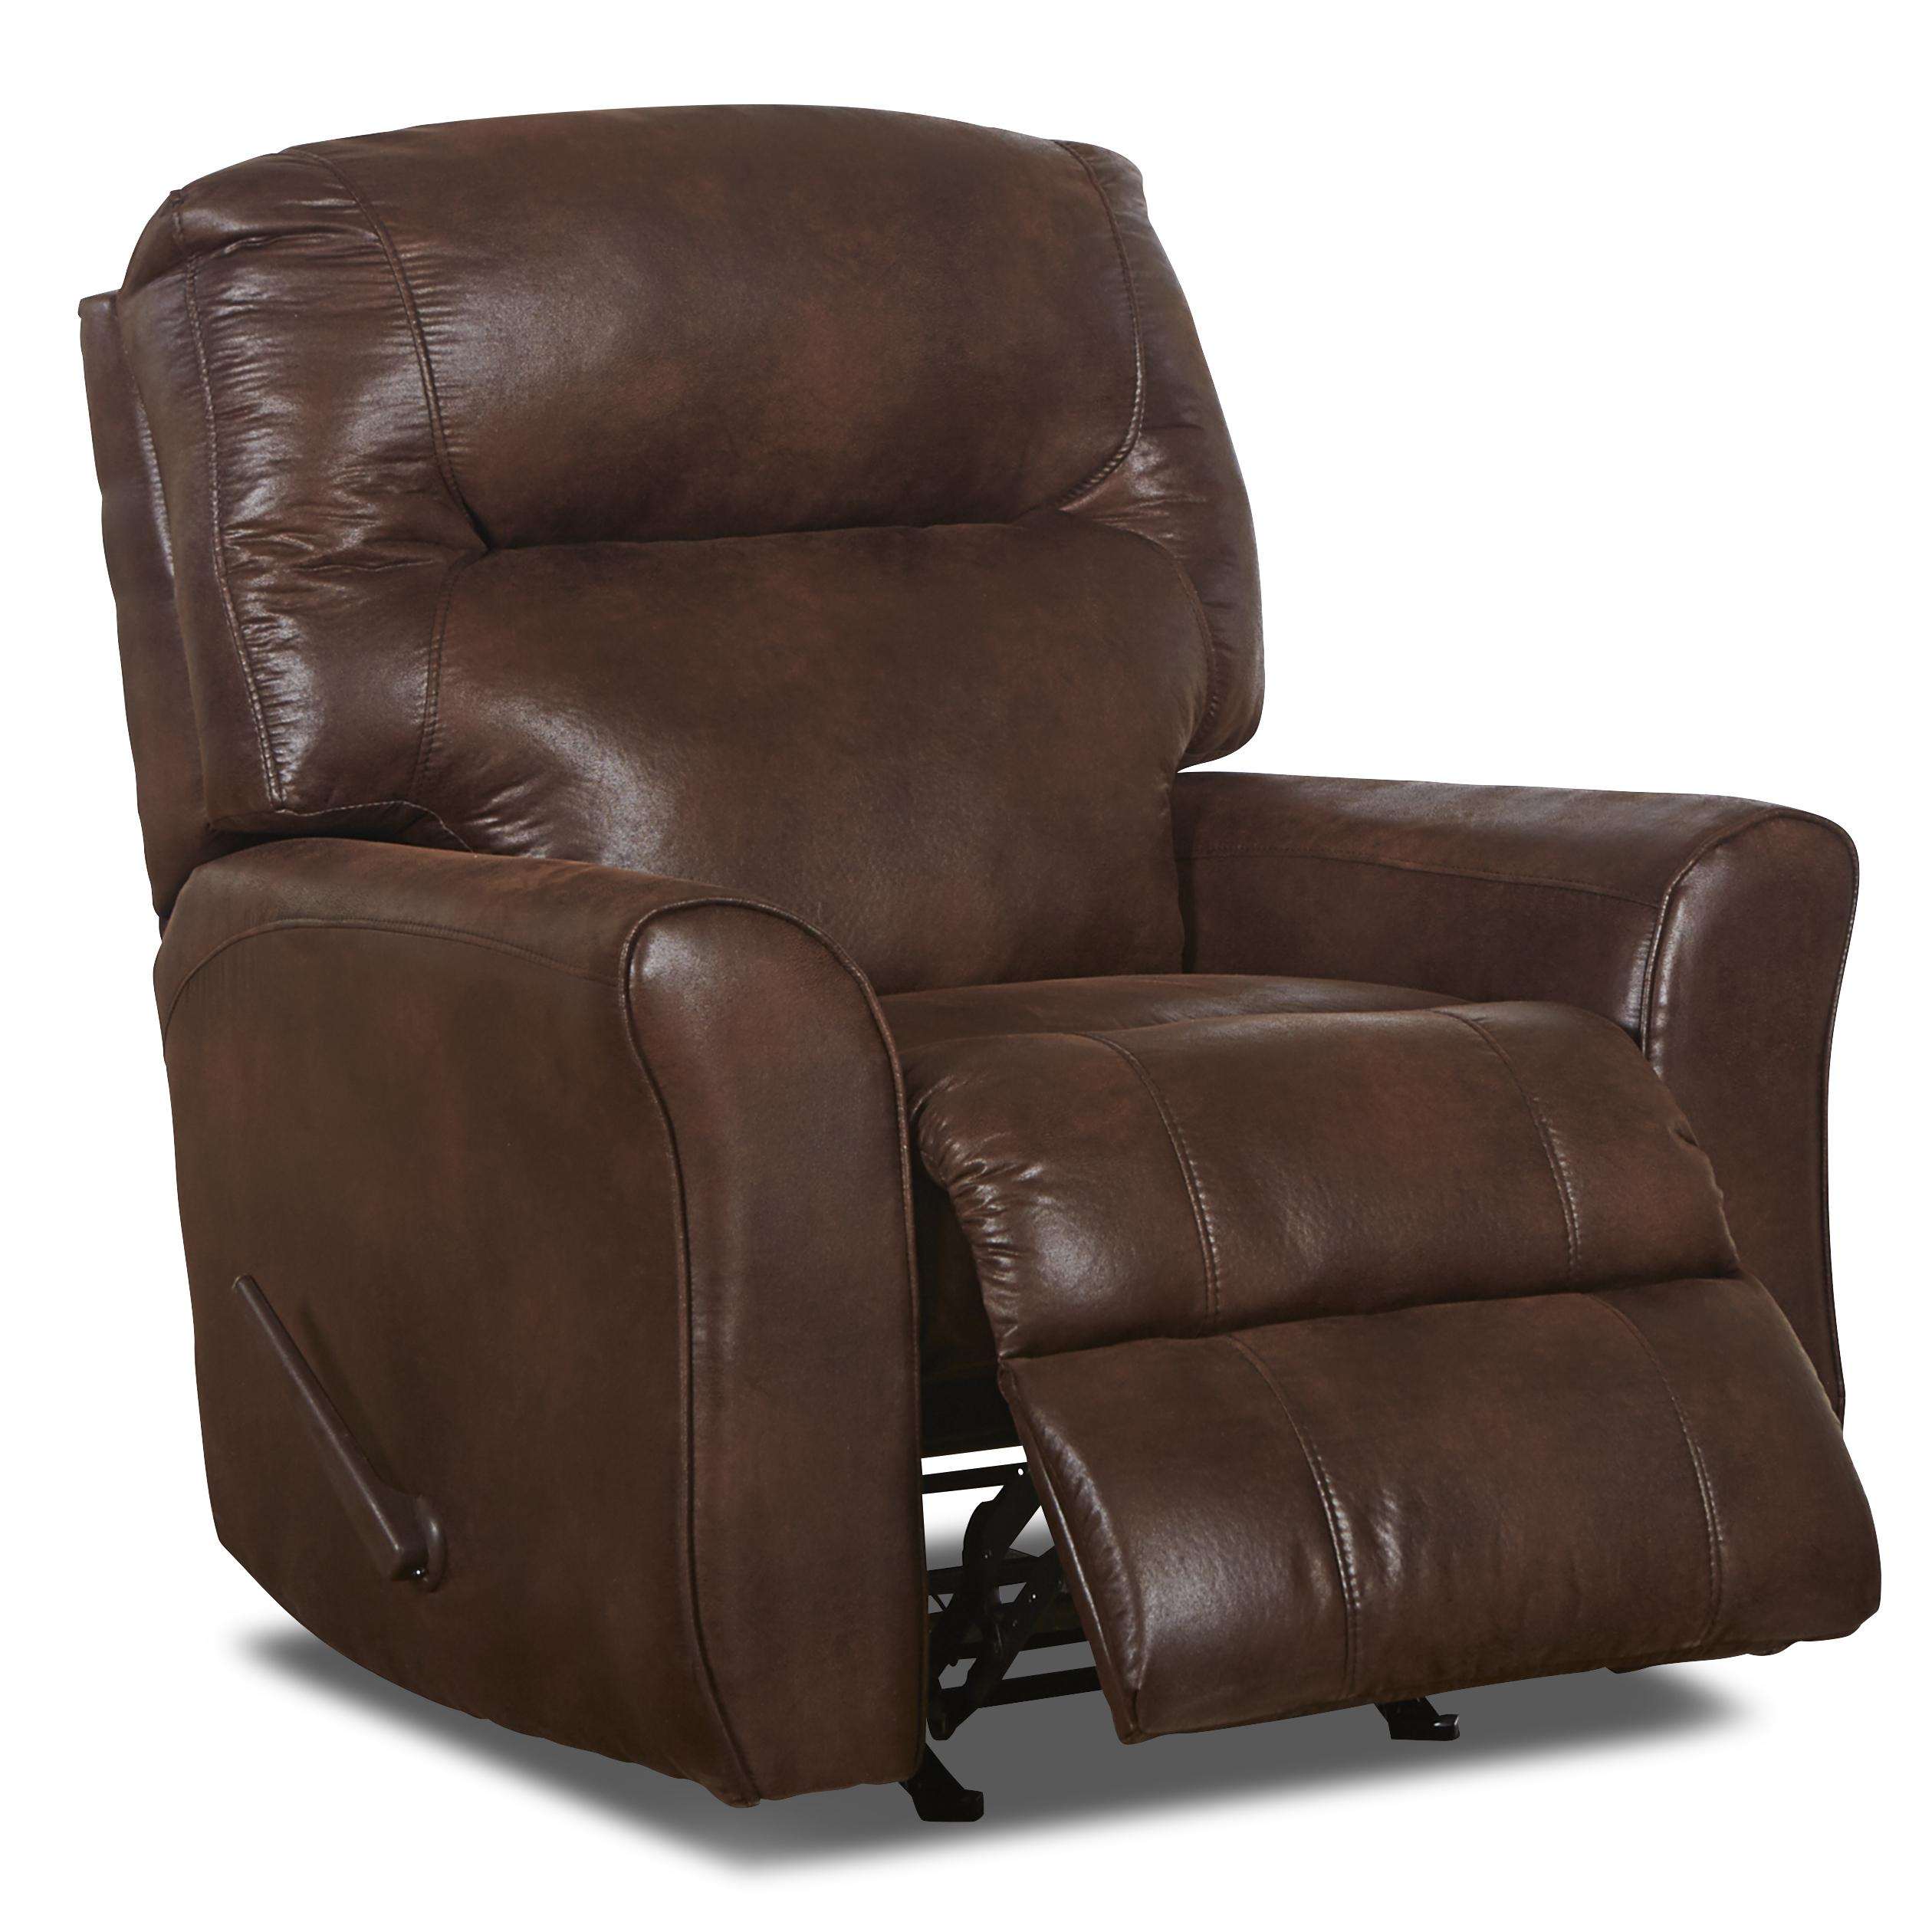 Superb img of Klaussner Schwartz Casual Leather Reclining Rocking Chair with  with #412F27 color and 2520x2520 pixels